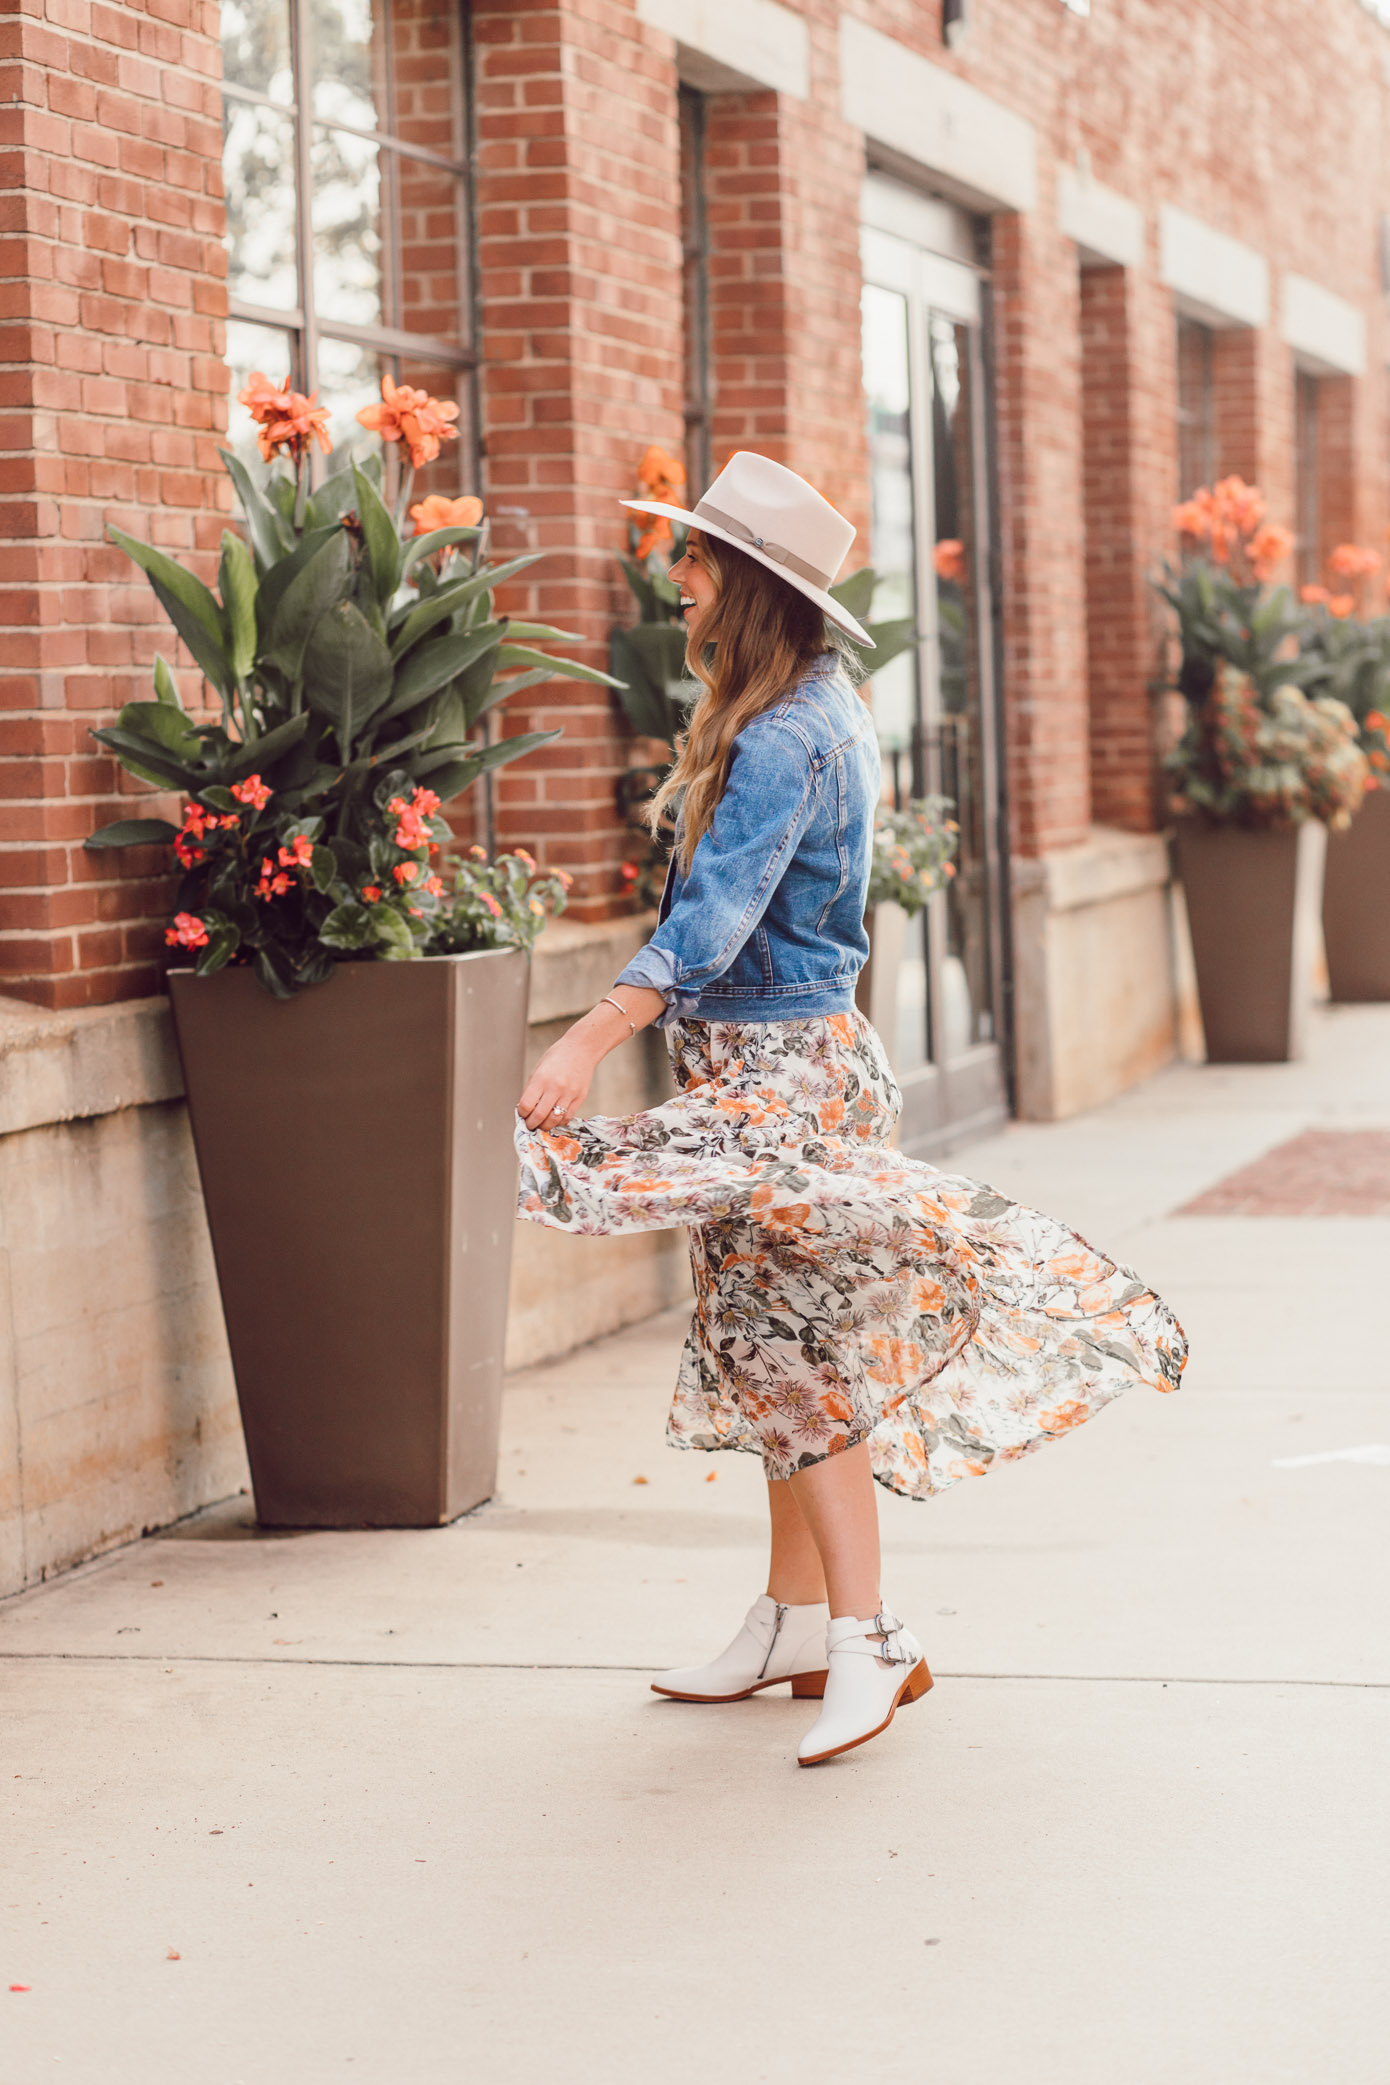 Fall Floral Midi Dress, White Booties for Fall 2018 | How to Style the Western Trend for Fall 2018 featured on Louella Reese